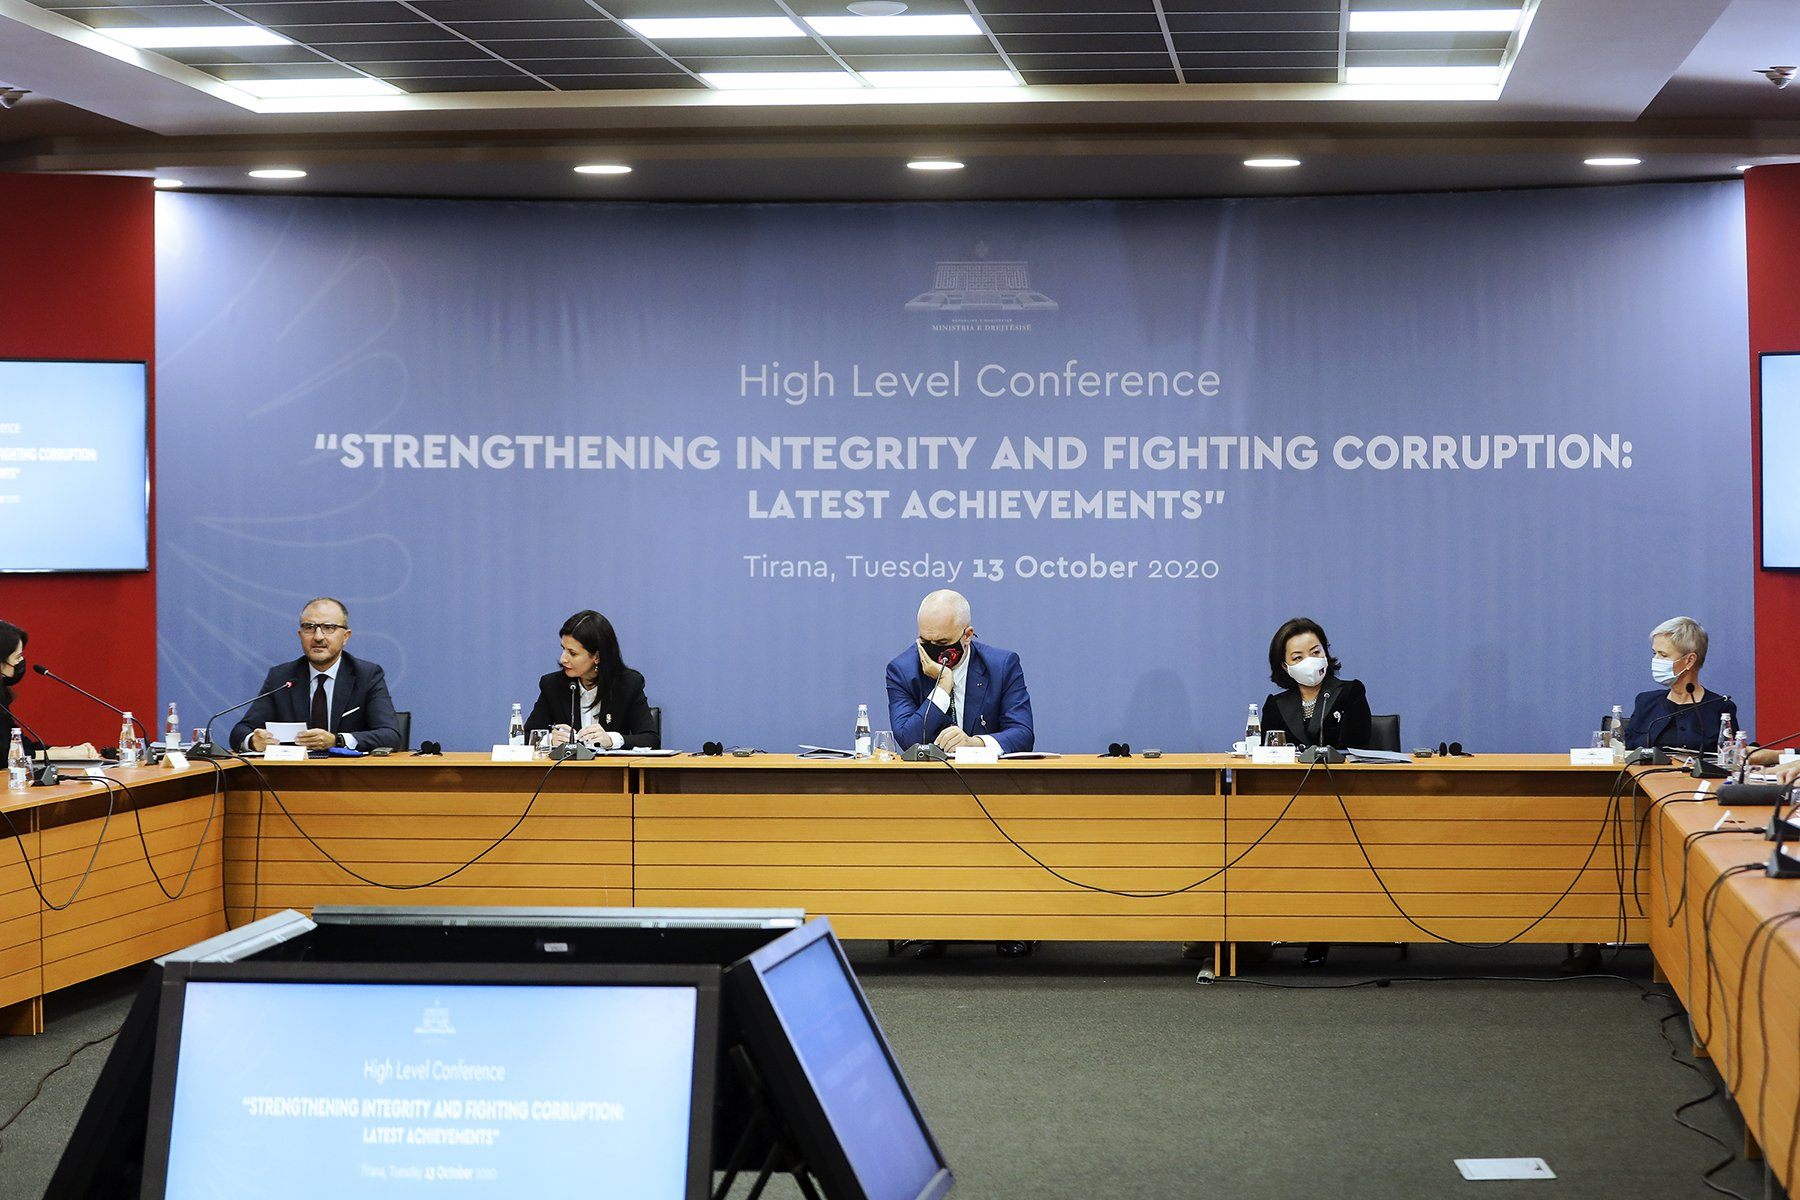 Comment: European Commission Suggests Albanians Lack 'Honesty' and 'Integrity'